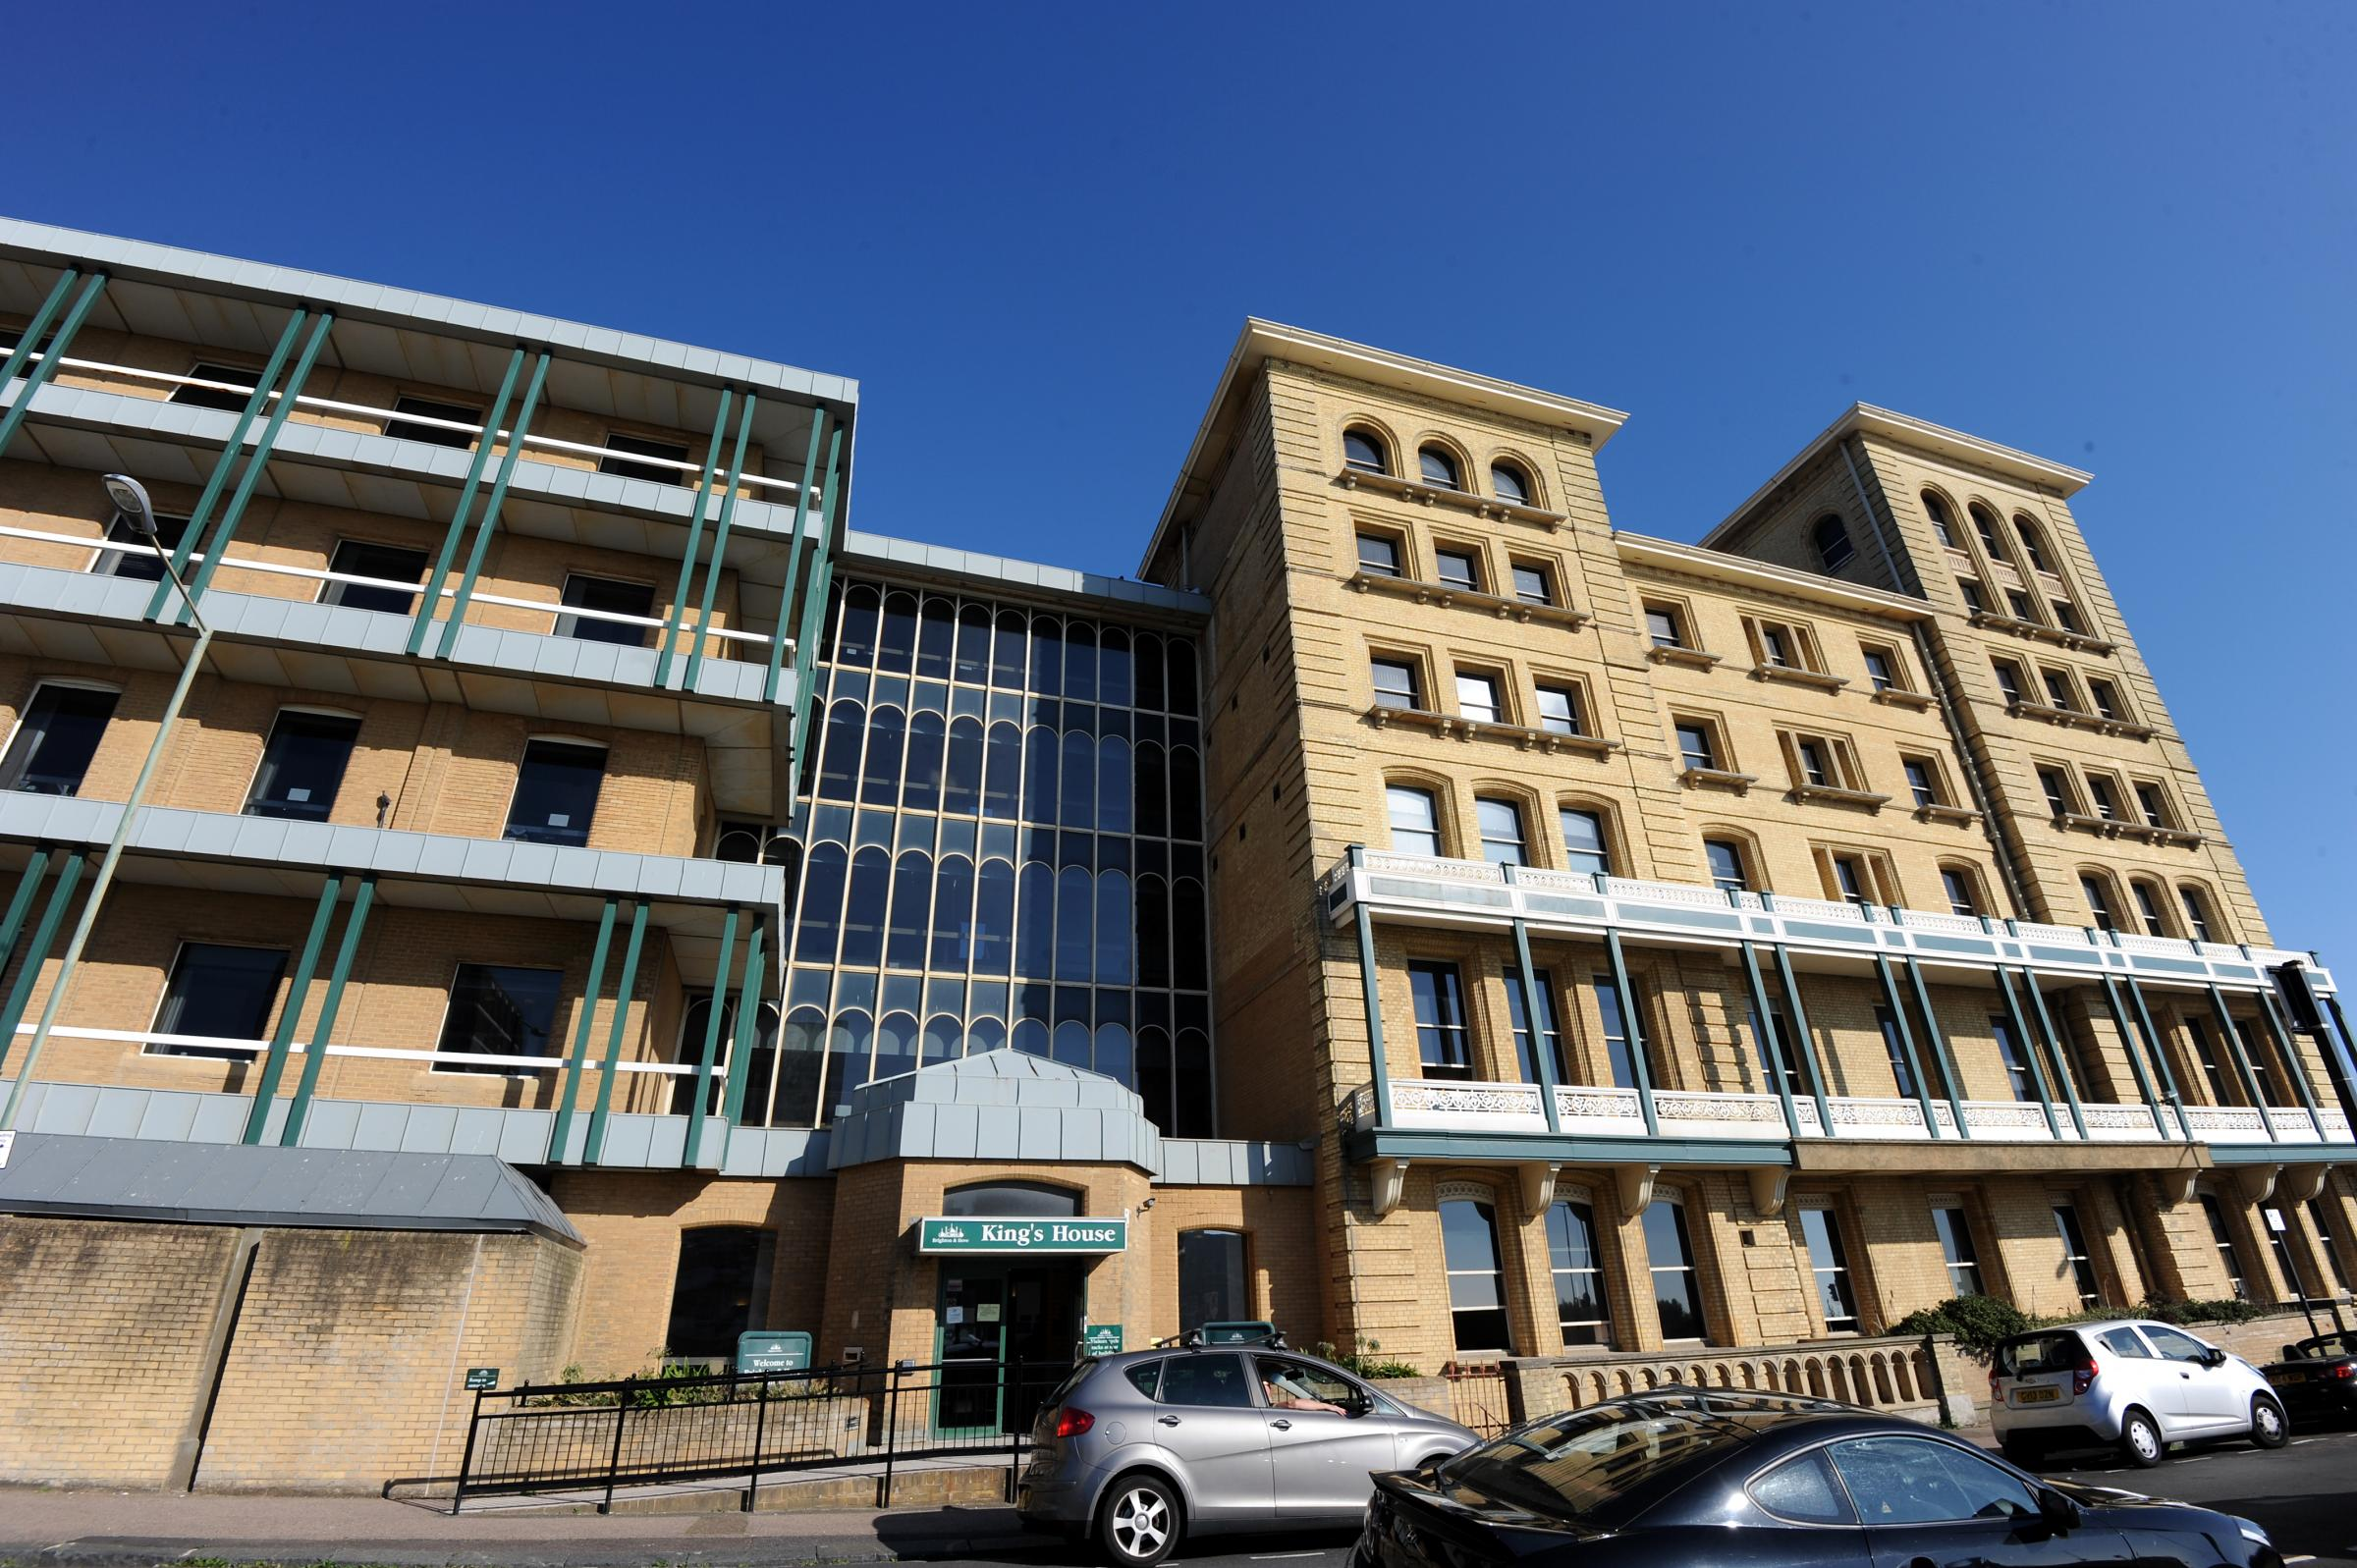 40 Brighton and Hove City Council staff have been dismissed for misconduct in three years.